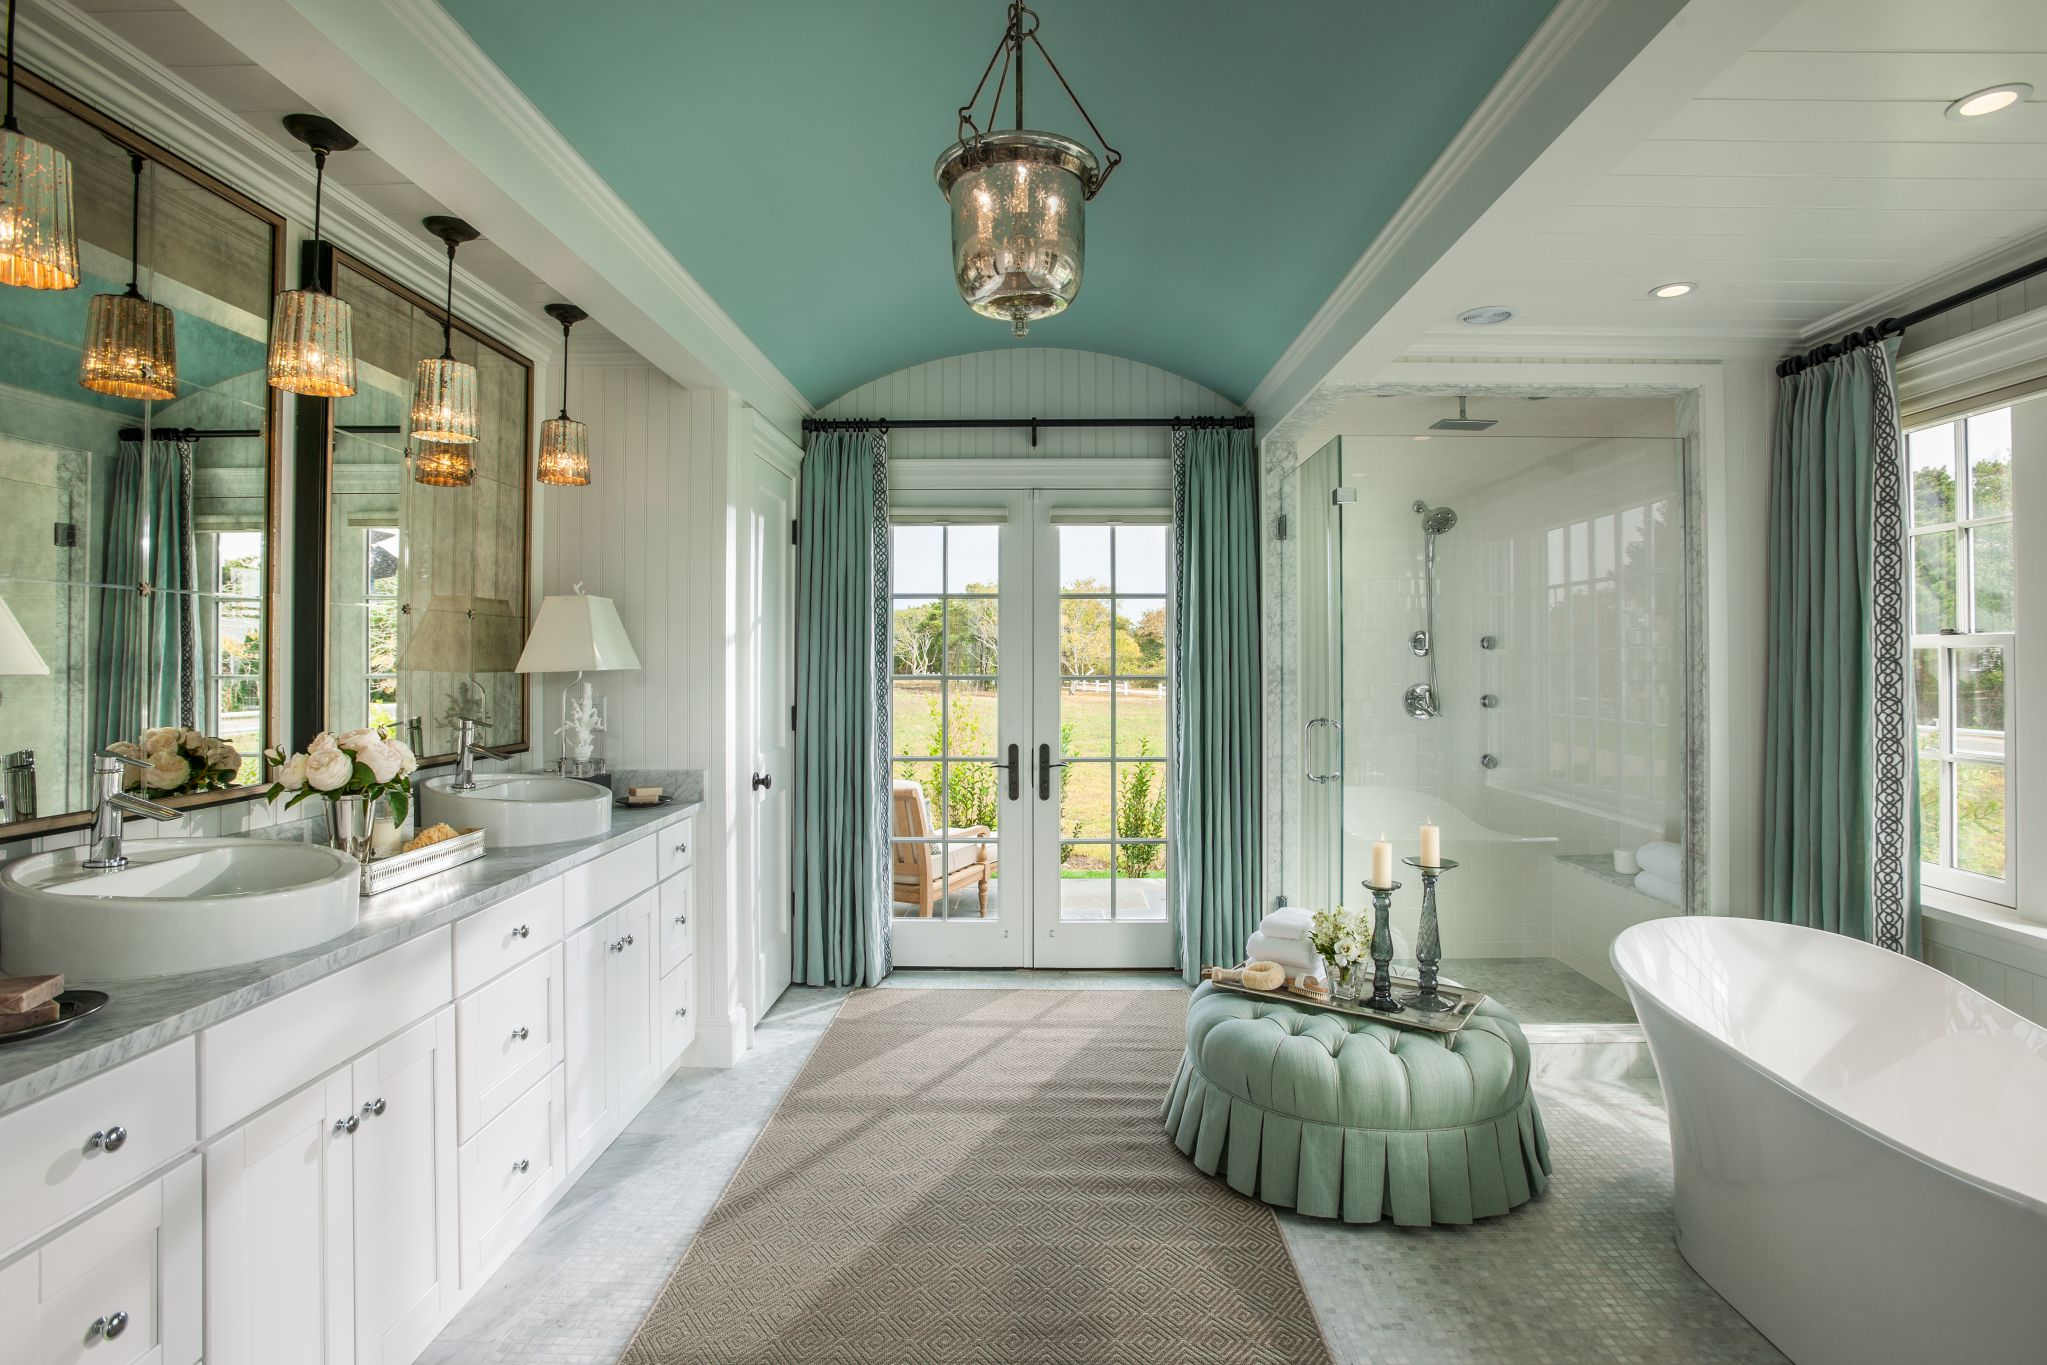 Fancy Cabinet Under Pendant Lighting For Good Master Bathroom Designs